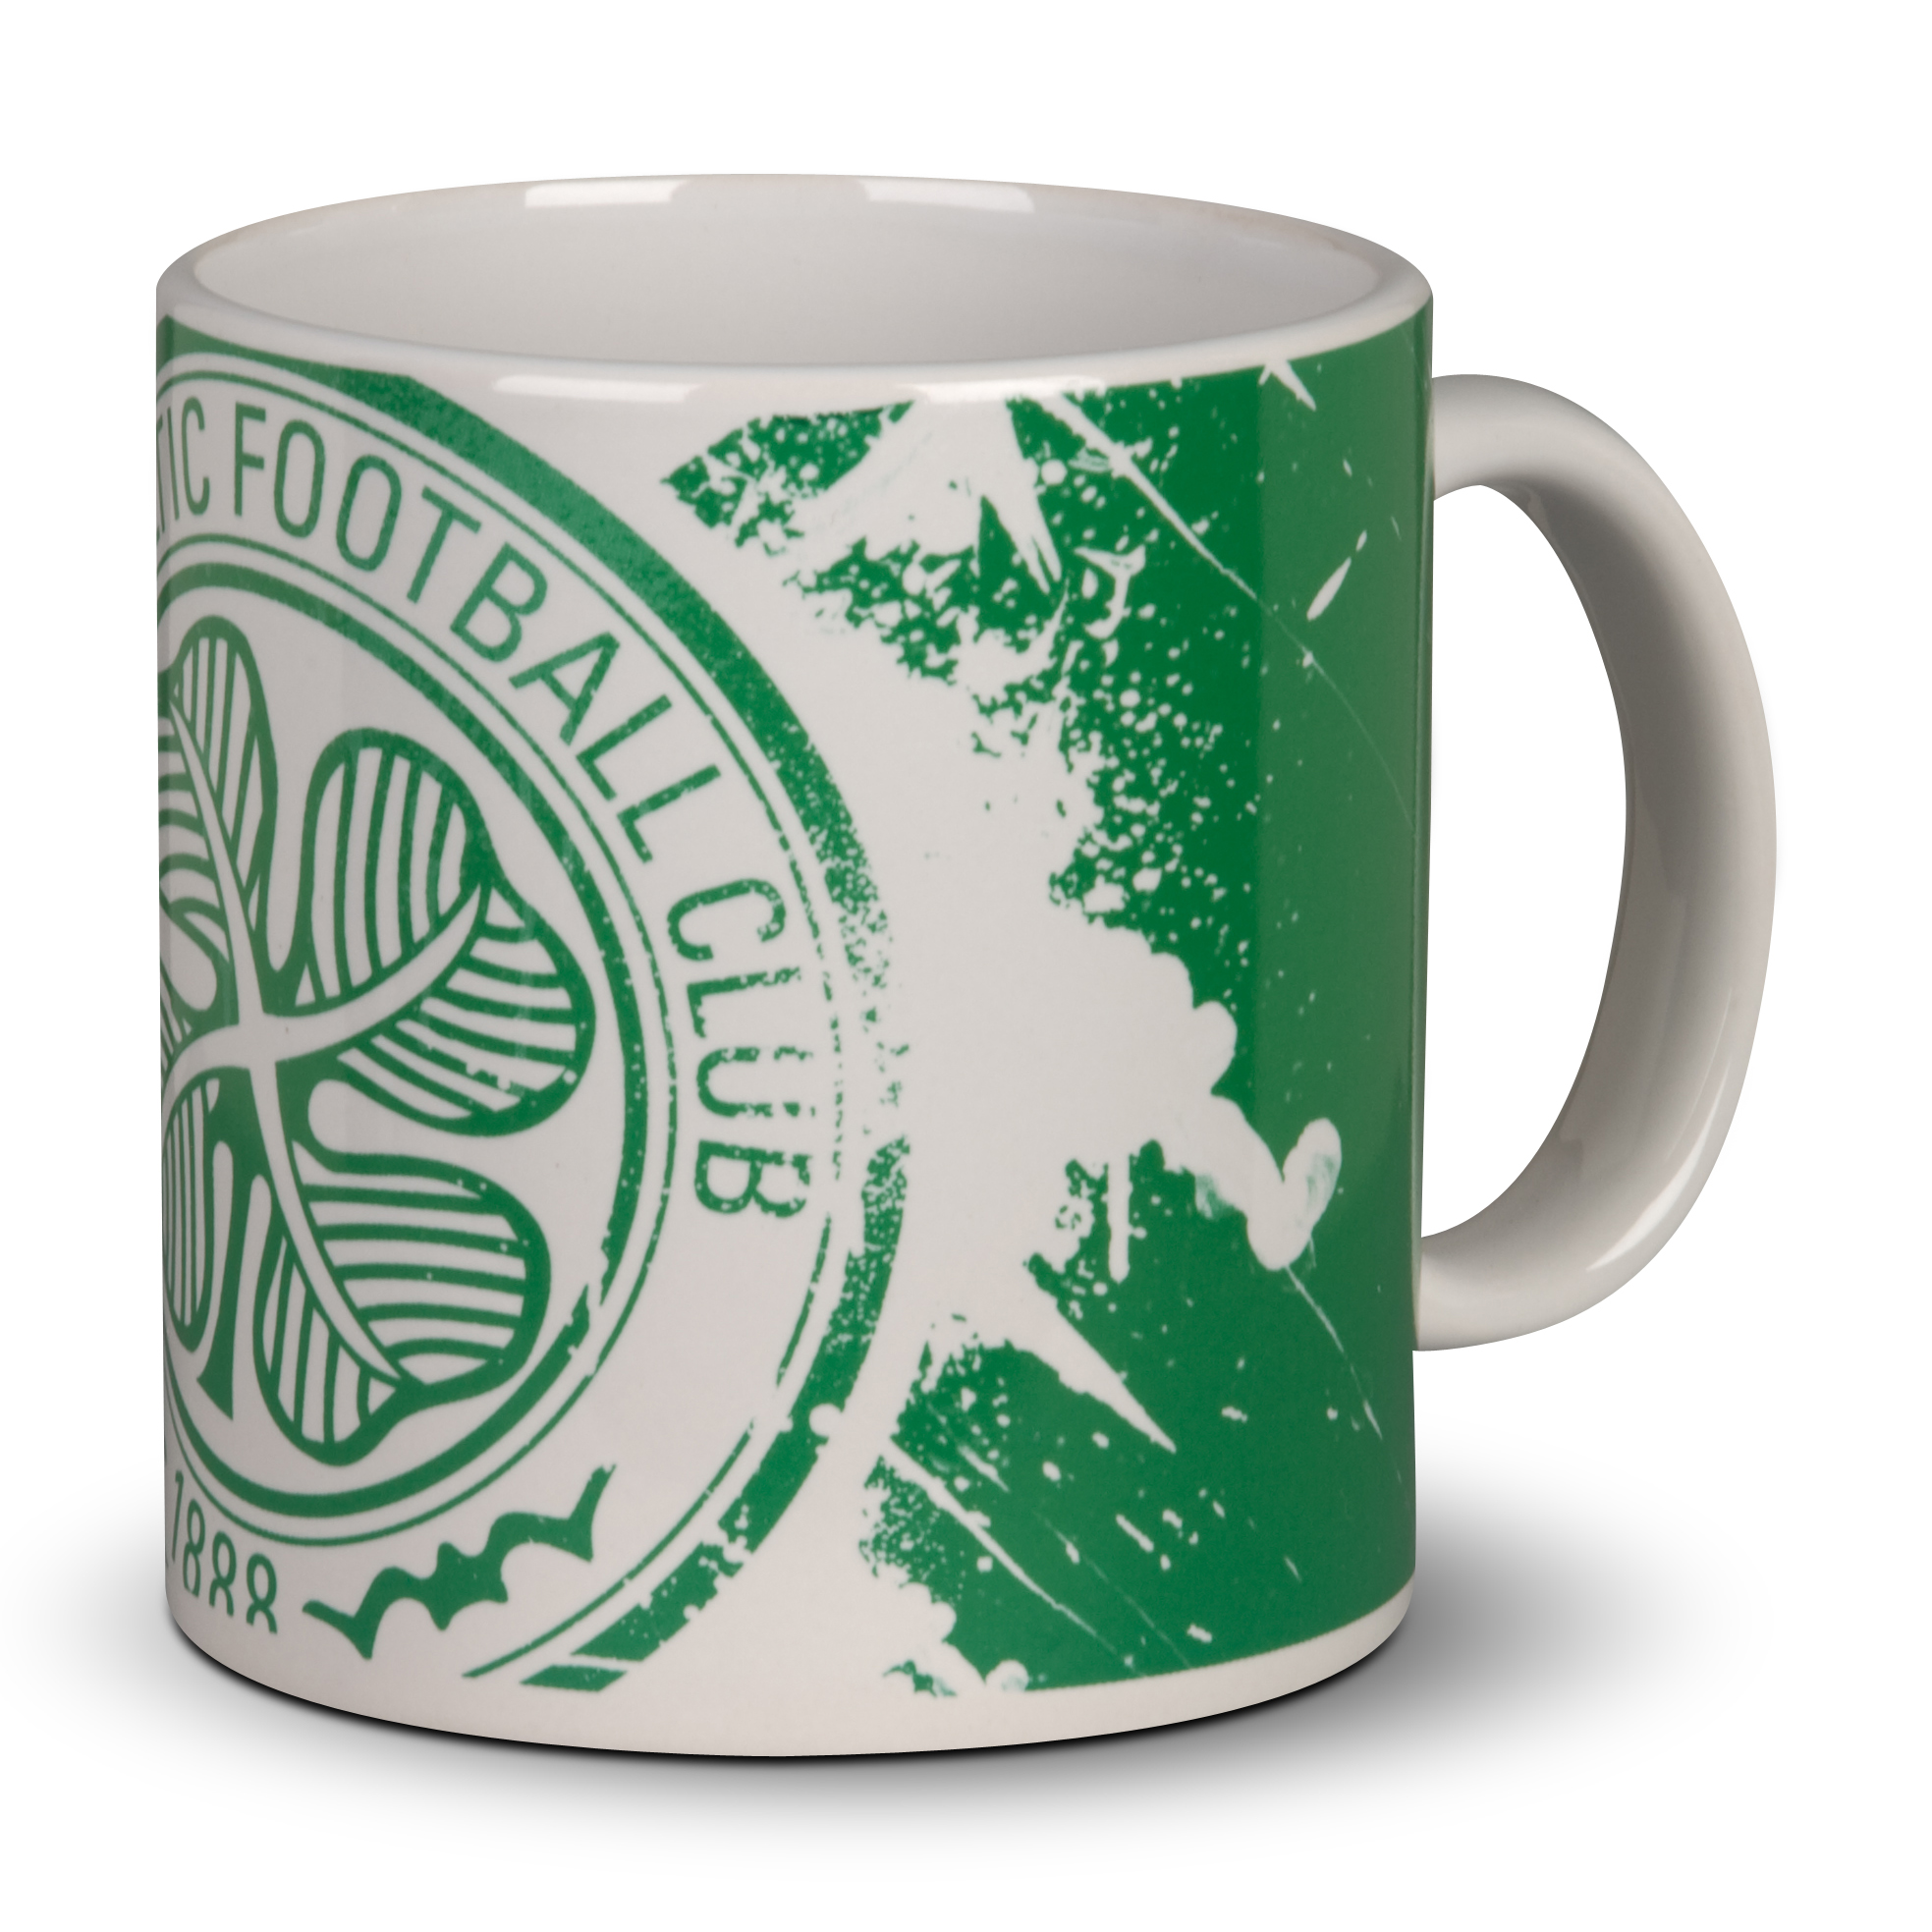 Celtic Kitchen Range